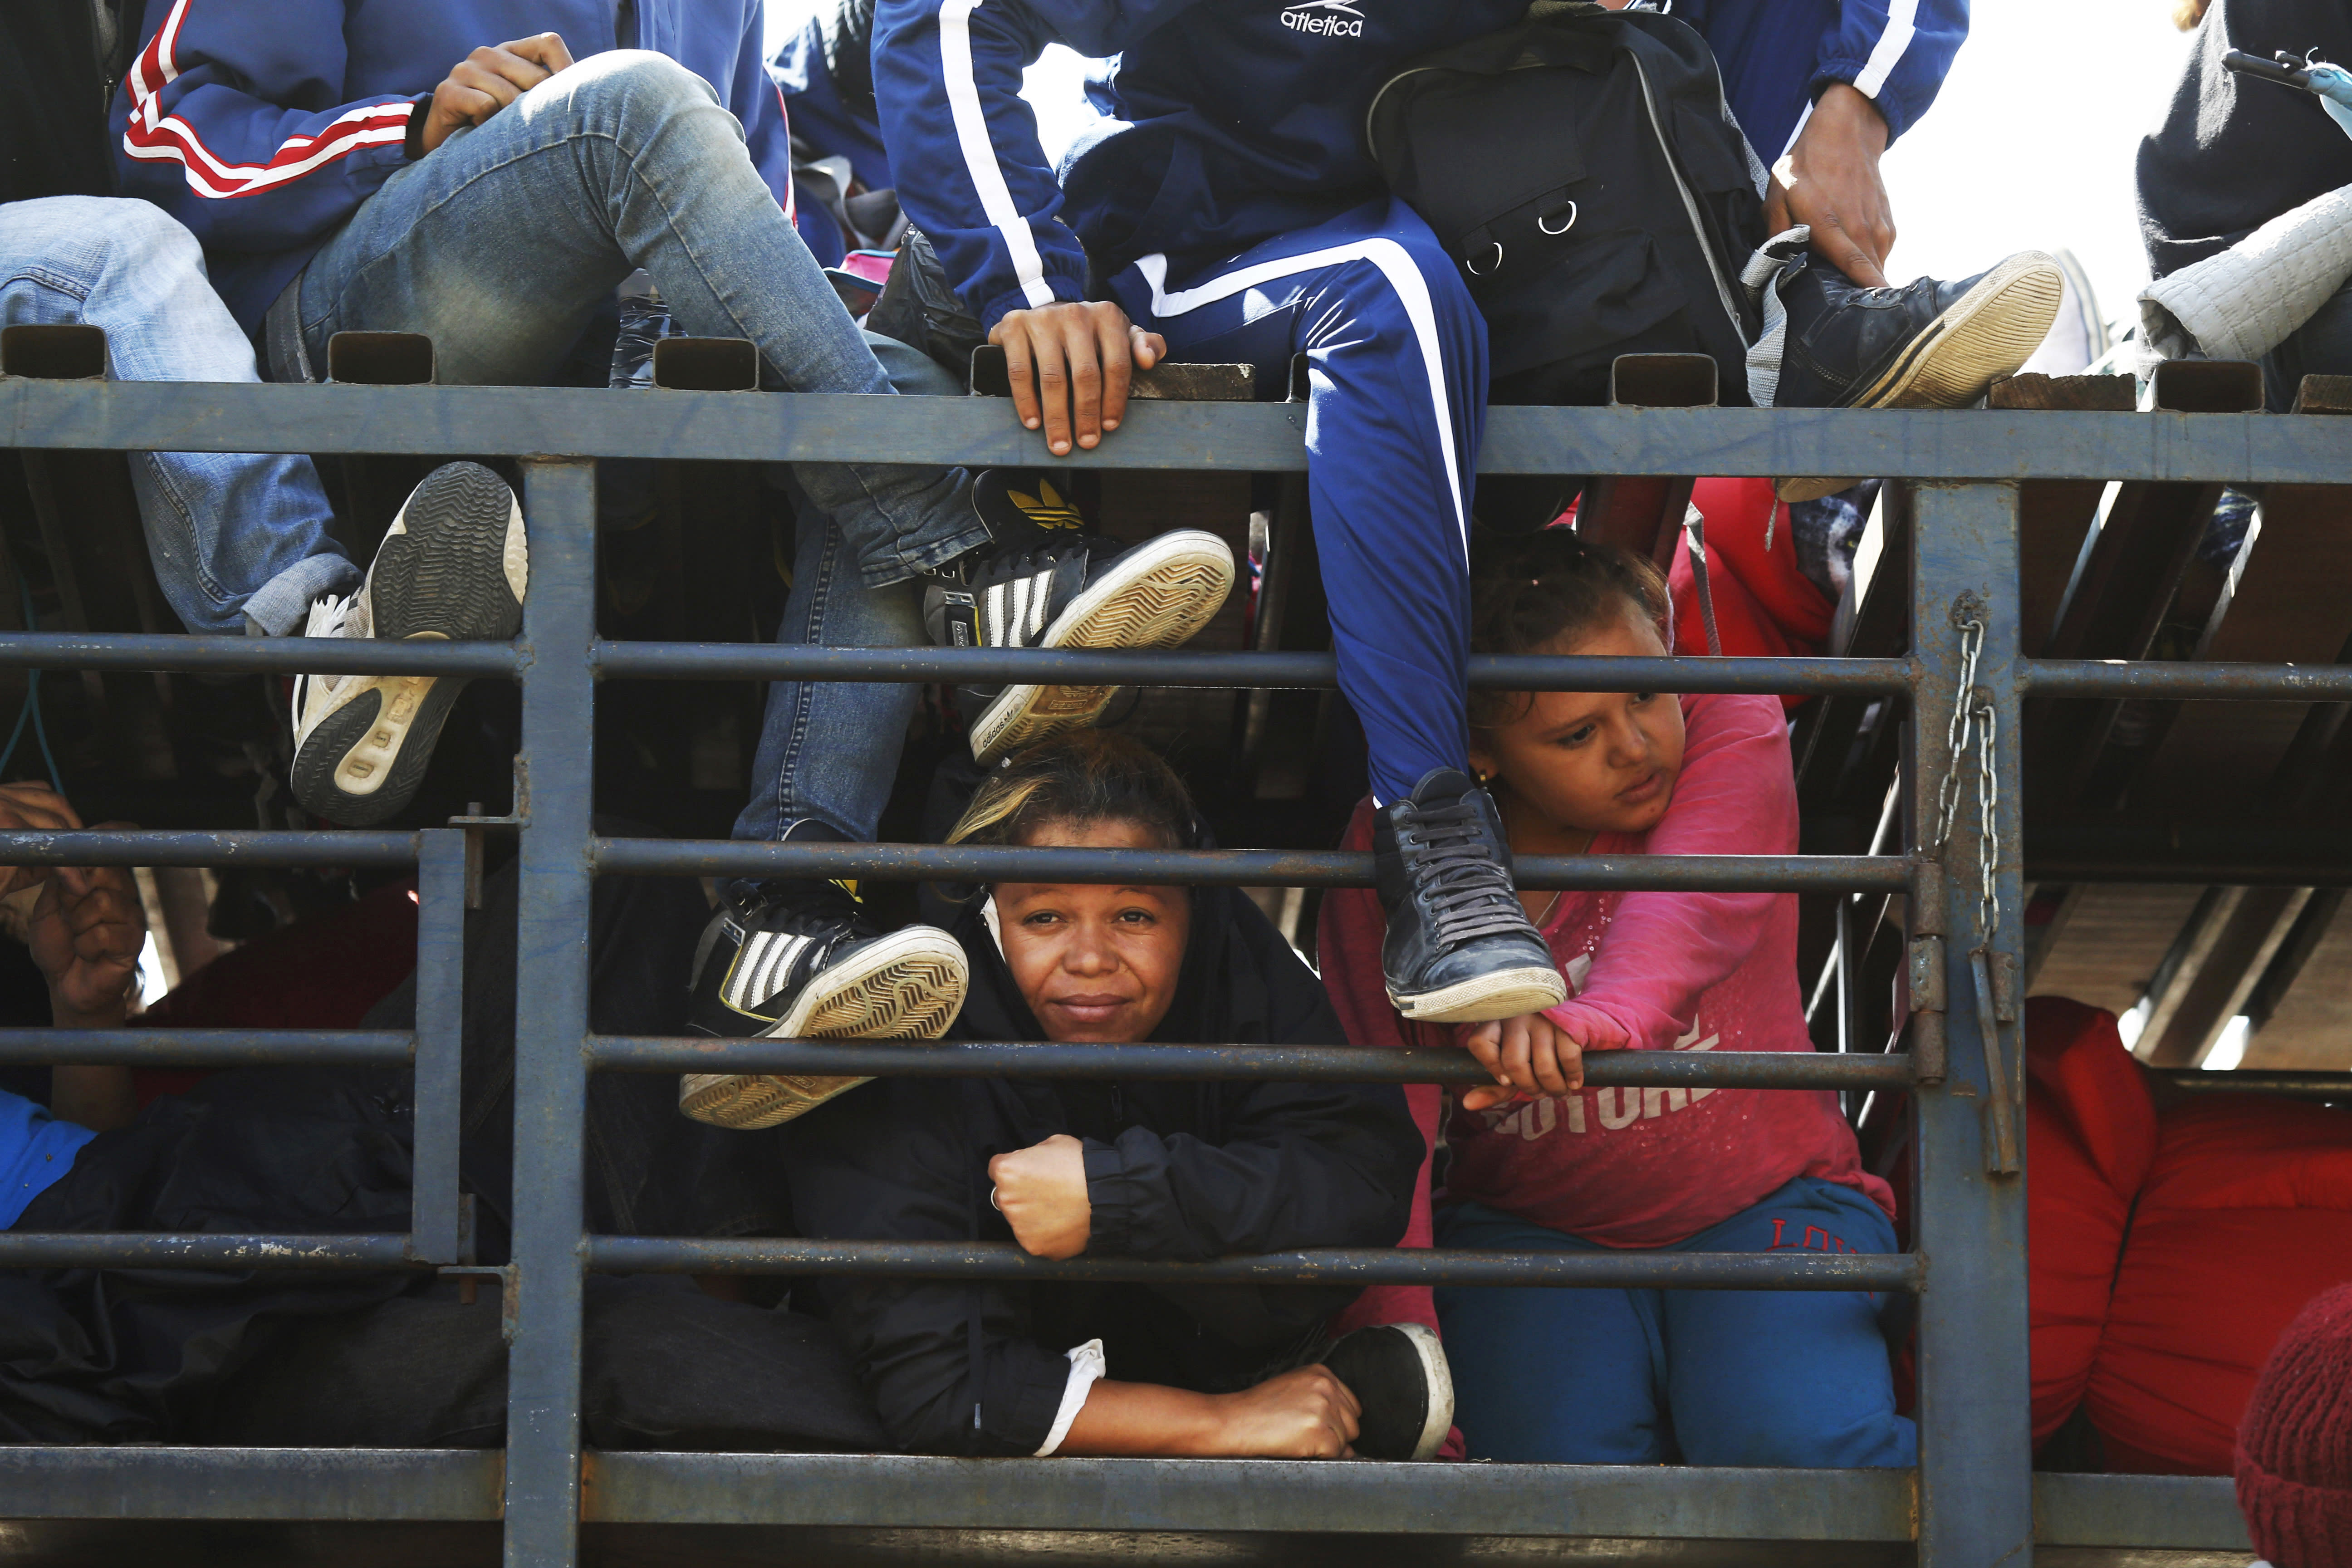 Central American migrants, part of the caravan hoping to reach the U.S. border, get a ride on a truck, in Celaya, Mexico, Sunday, Nov. 11, 2018. Local Mexican officials were once again Sunday helping thousands of Central American migrants find rides on the next leg of their journey toward the U.S. border. (AP Photo/Marco Ugarte)